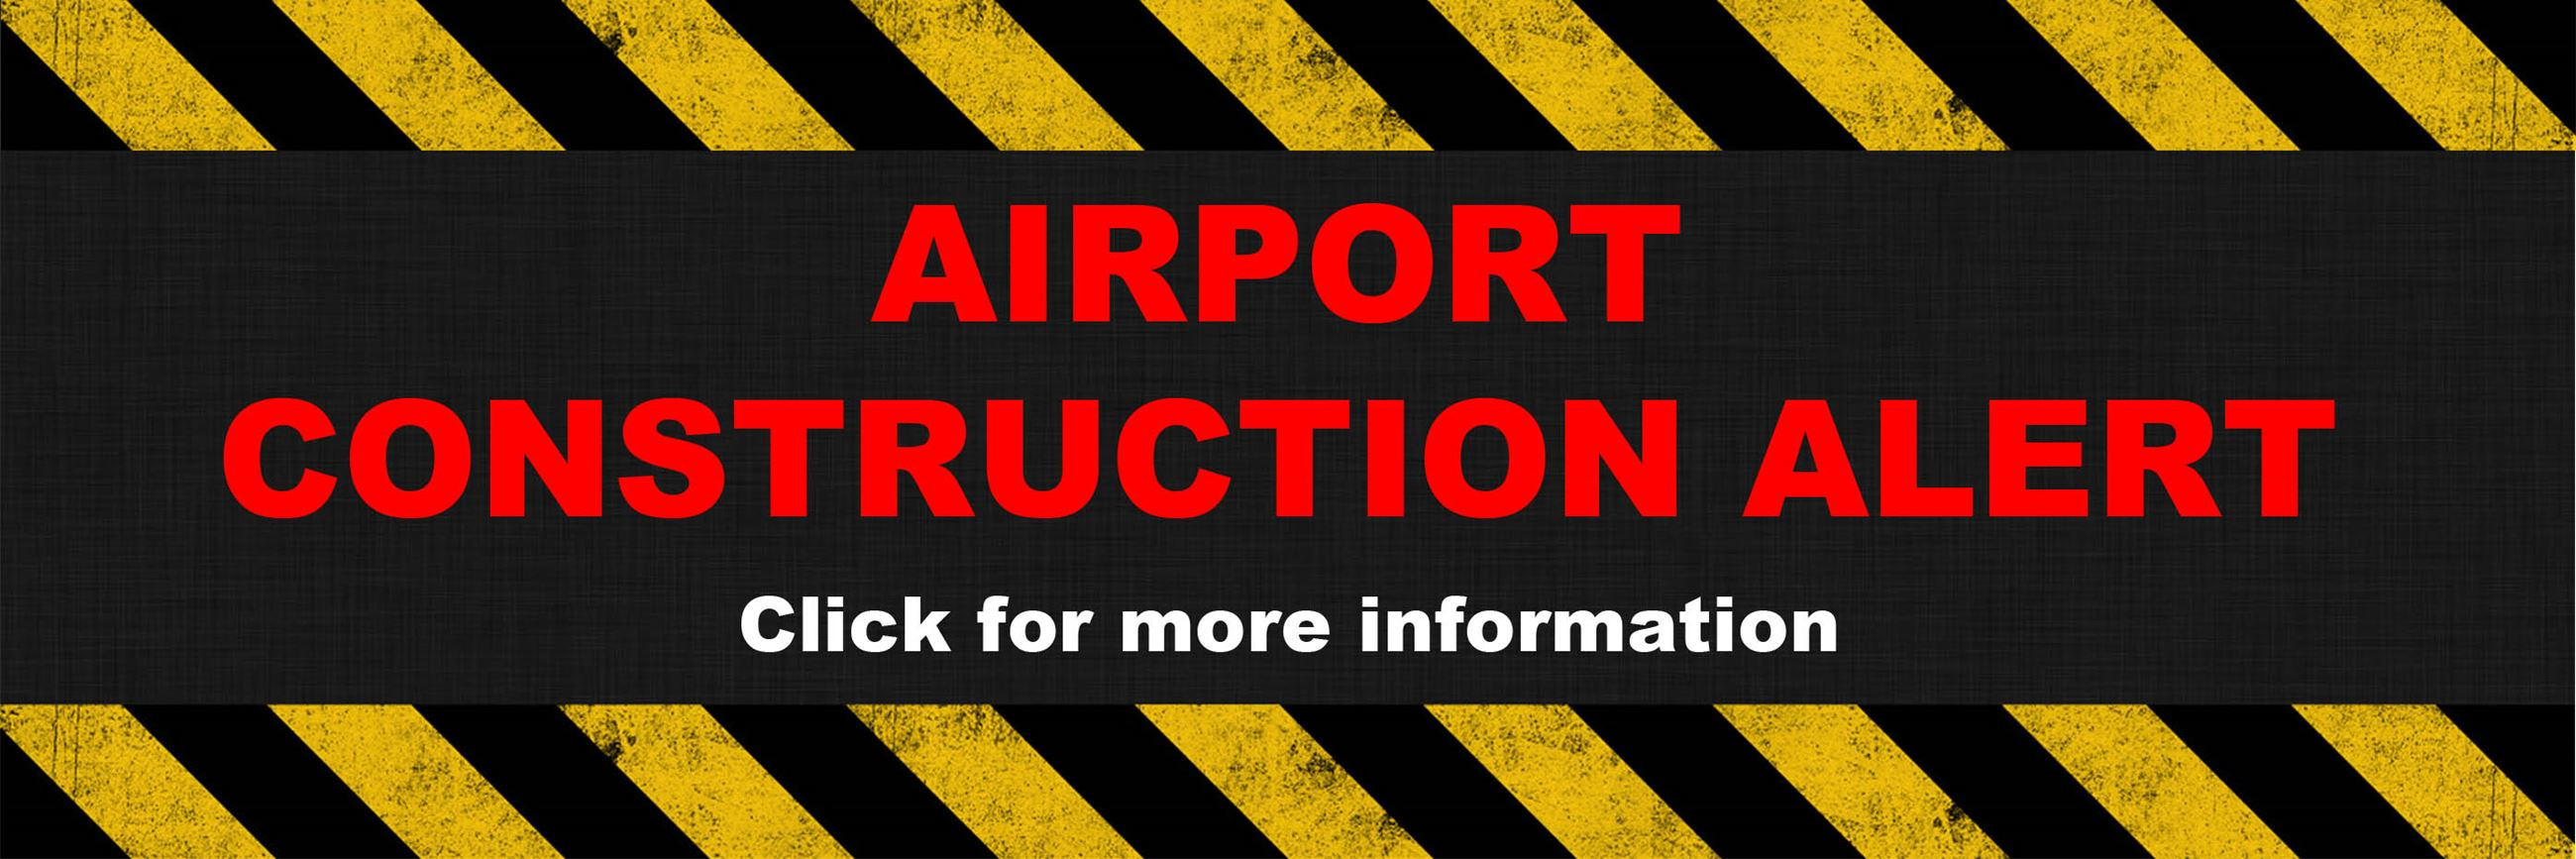 Web_AirportConstructionAlert